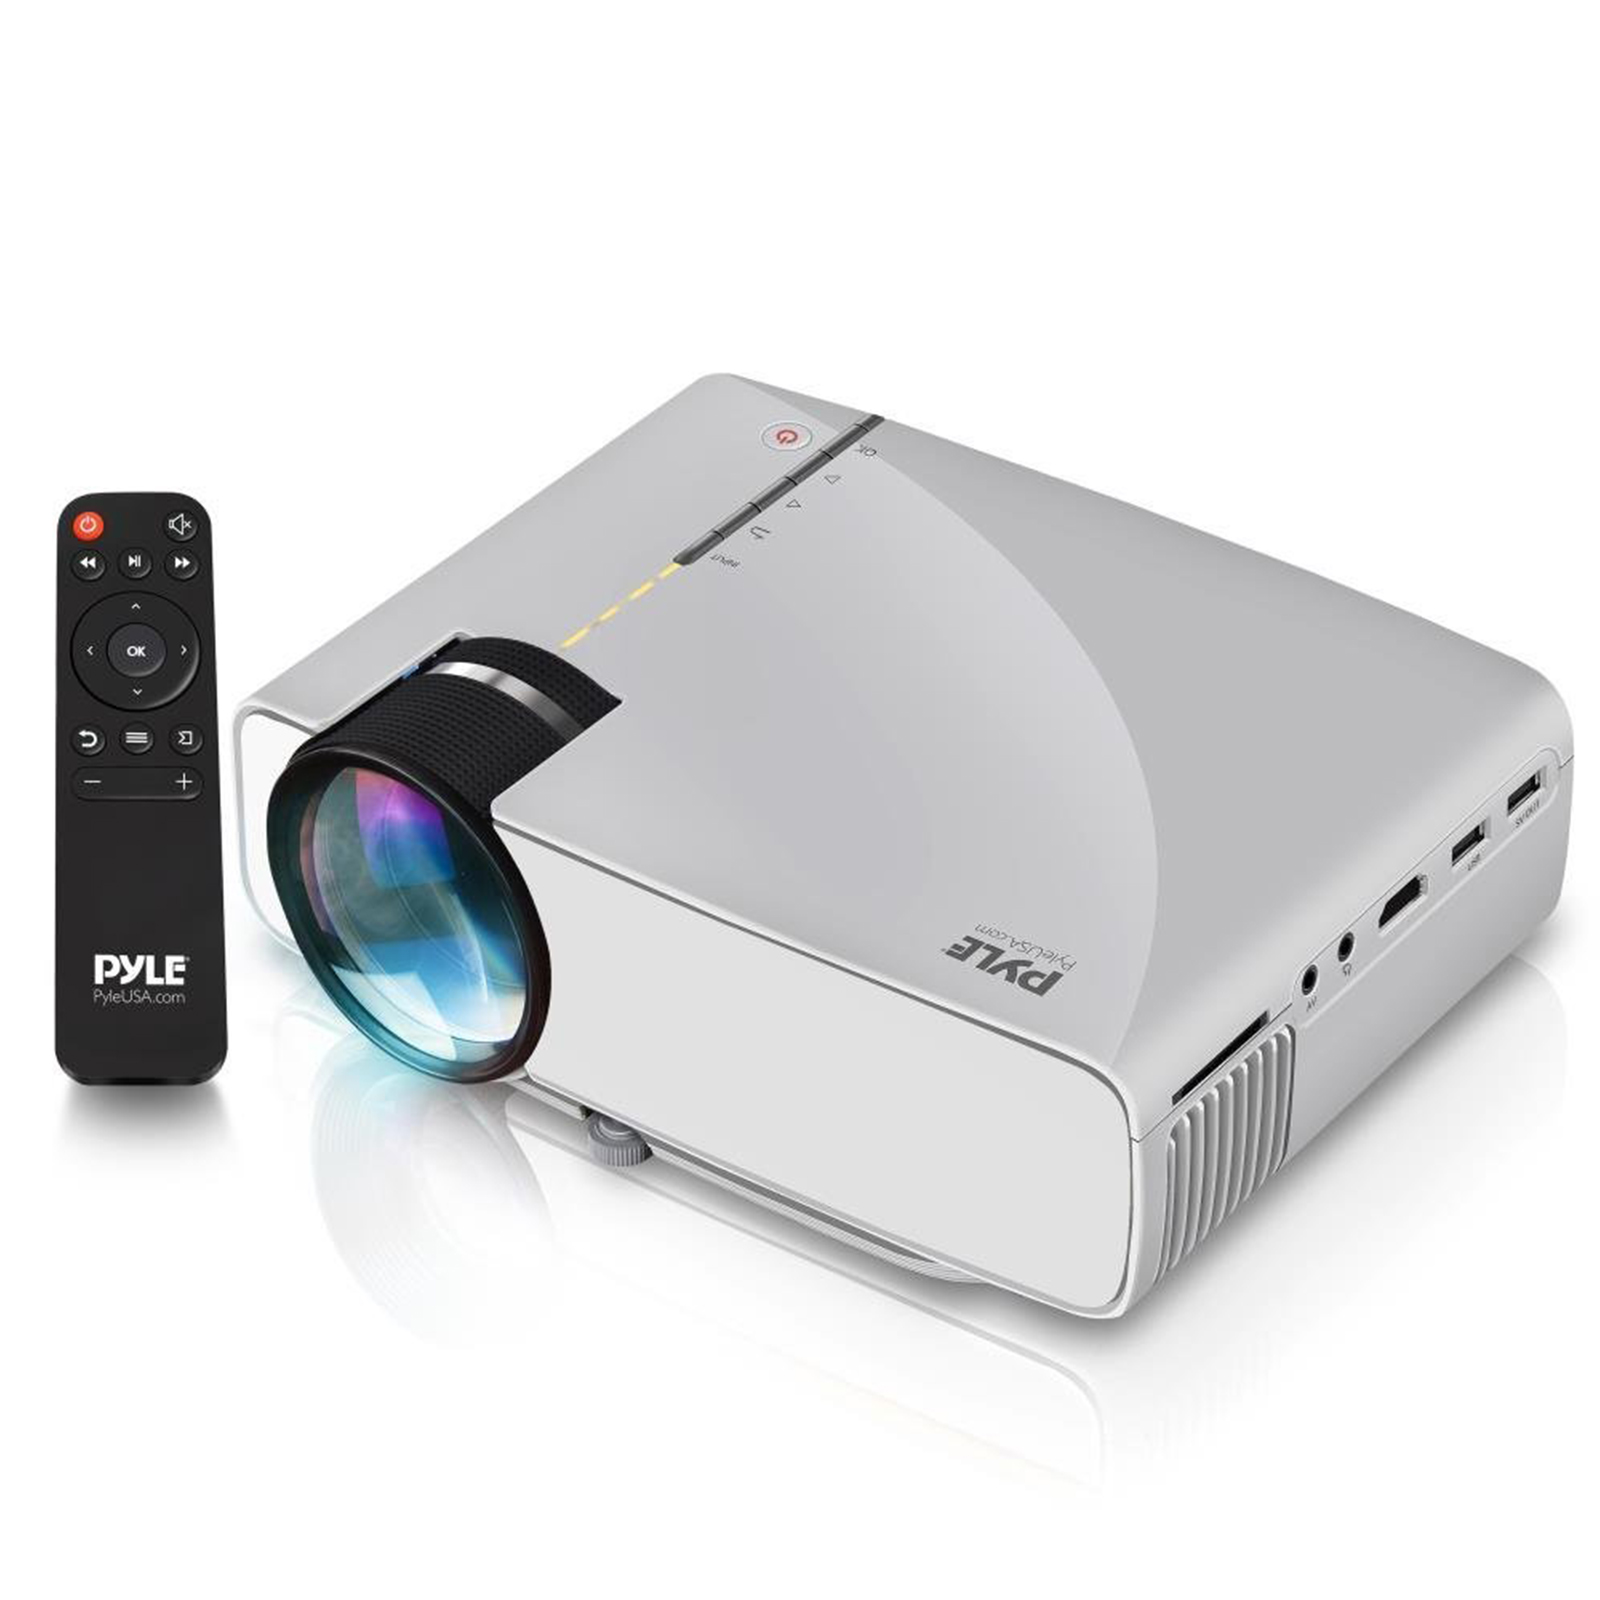 "Pyle Portable Multimedia Home Theater Projector - Compact HD 1080p High Lumen LED USB HDMI Adjustable 50"" to 130"" Inch Screen in your Mac or PC - Built in Stereo Speaker with Remote Control"